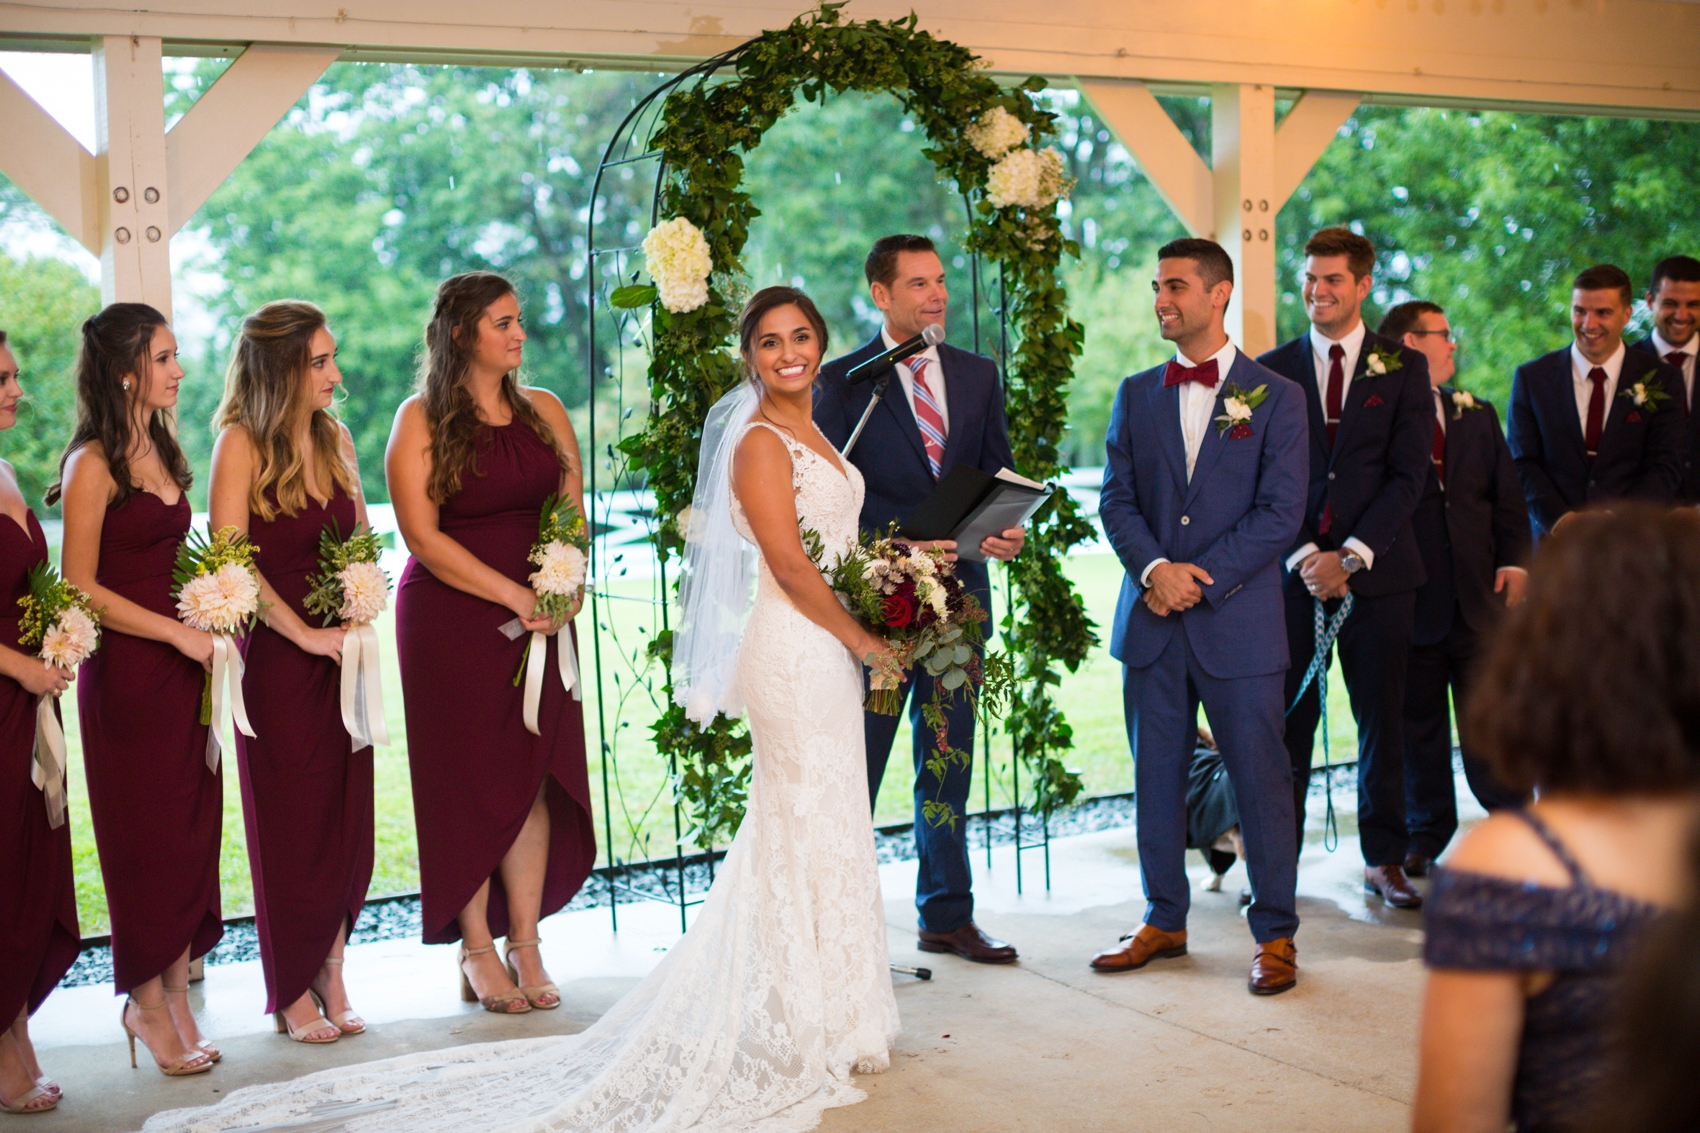 Ashlawn-Highland-Virginia-Wedding-2018-0146.jpg